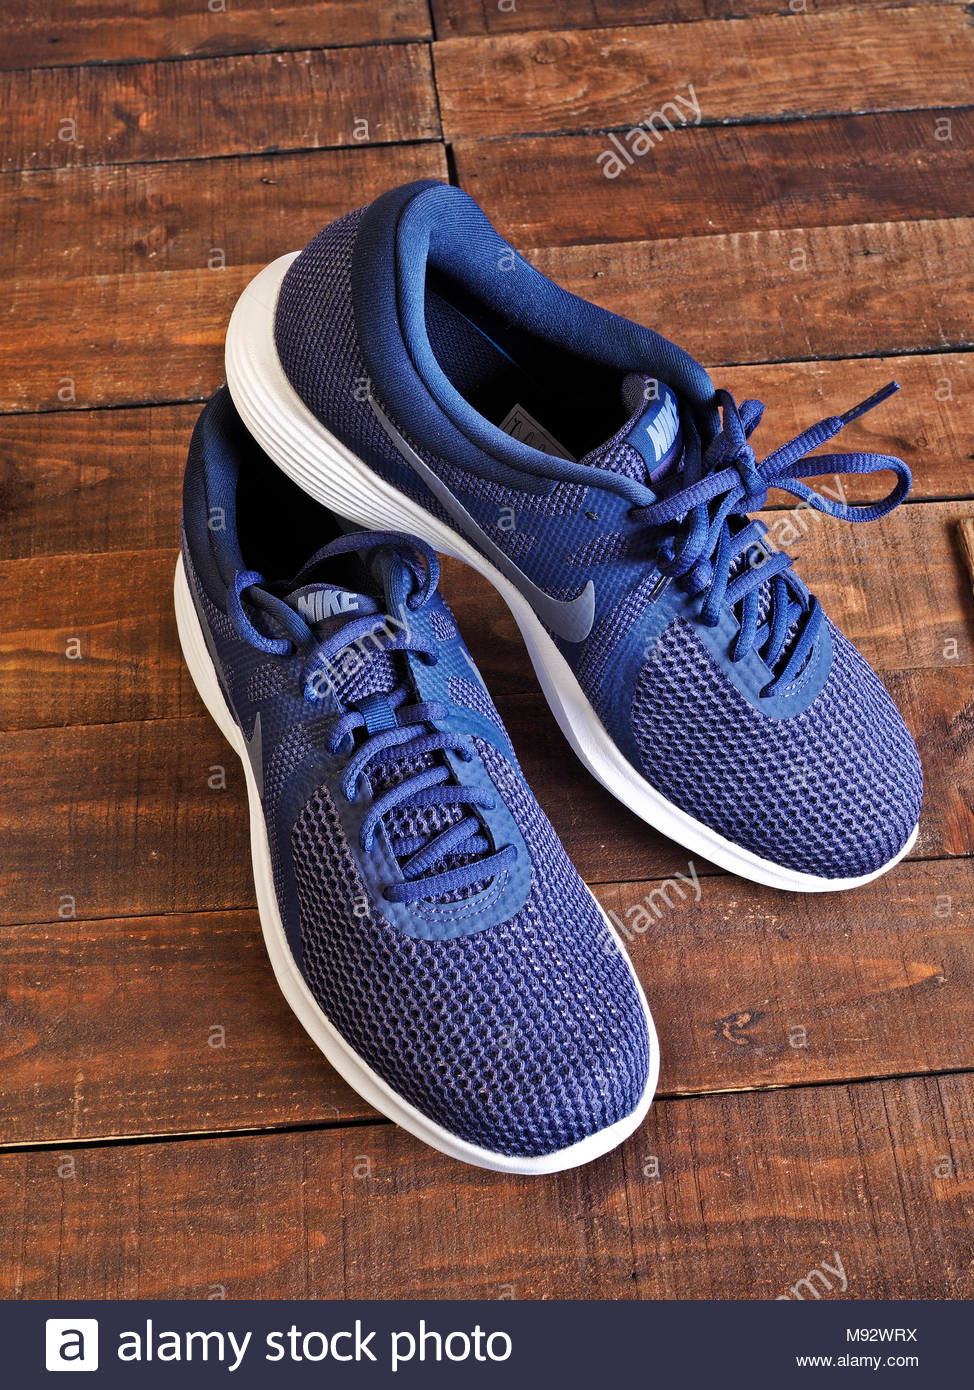 blue lace-up Nike trainers